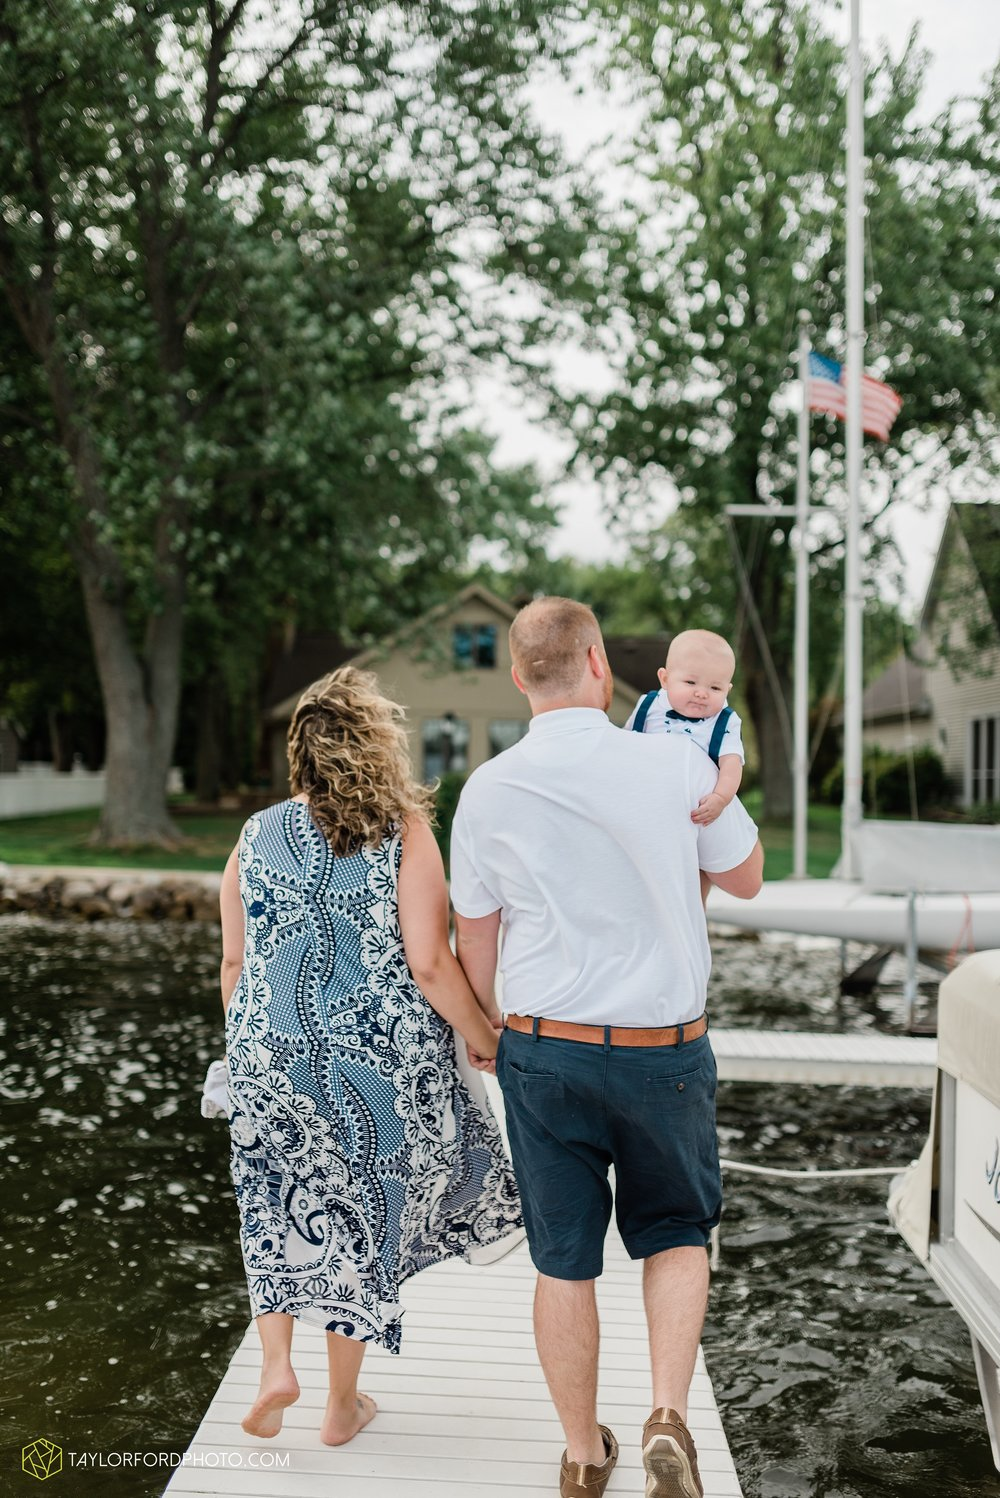 lake-wawasee-conklin-bay-lifestyle-family-september-late-fall-photographer-taylor-ford-photography_0602.jpg